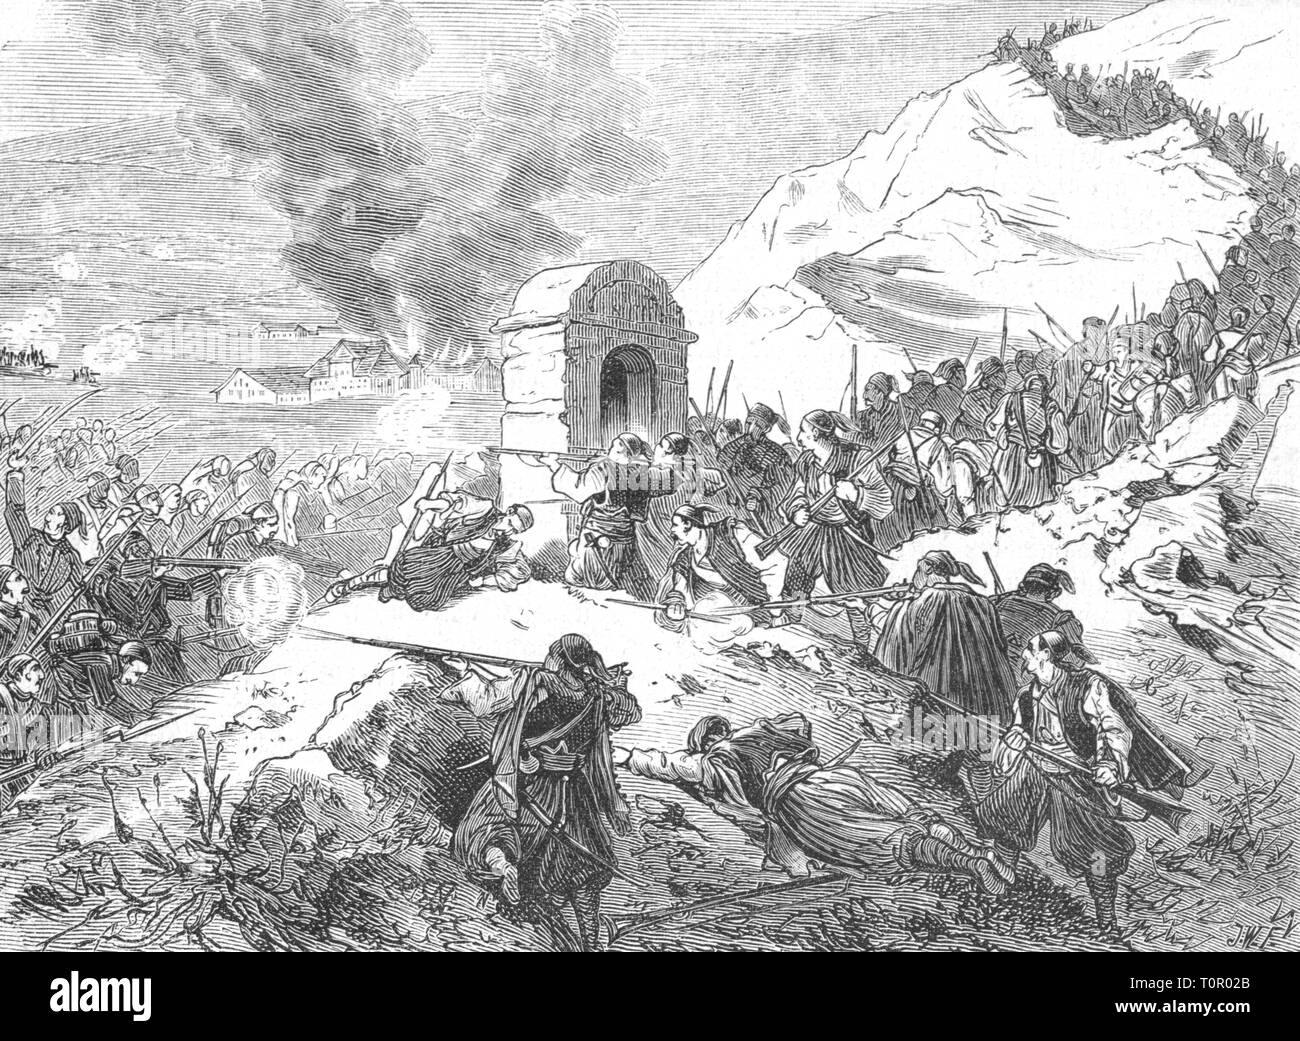 uprising in the Hercegovina 1875 - 1878, encounter between insurgents and Ottoman troops at the Krupa, 1875, contemporary wood engraving, Christian, Christians, insurgency, rebellion, insurgencies, revolts, rebellions, in revolt, insurrection, insurgent, insurgents, revolter, revolters, rebel, rebels, battle, battles, fight, fights, struggle, struggles, military, soldiers, soldier, Turks, the Balkans, Great Eastern Crisis, crisis, crises, people, 19th century, uprising, rising, uprisings, encounter, encounters, Ottoman, Ottoman Empire, historic, , Additional-Rights-Clearance-Info-Not-Available Stock Photo